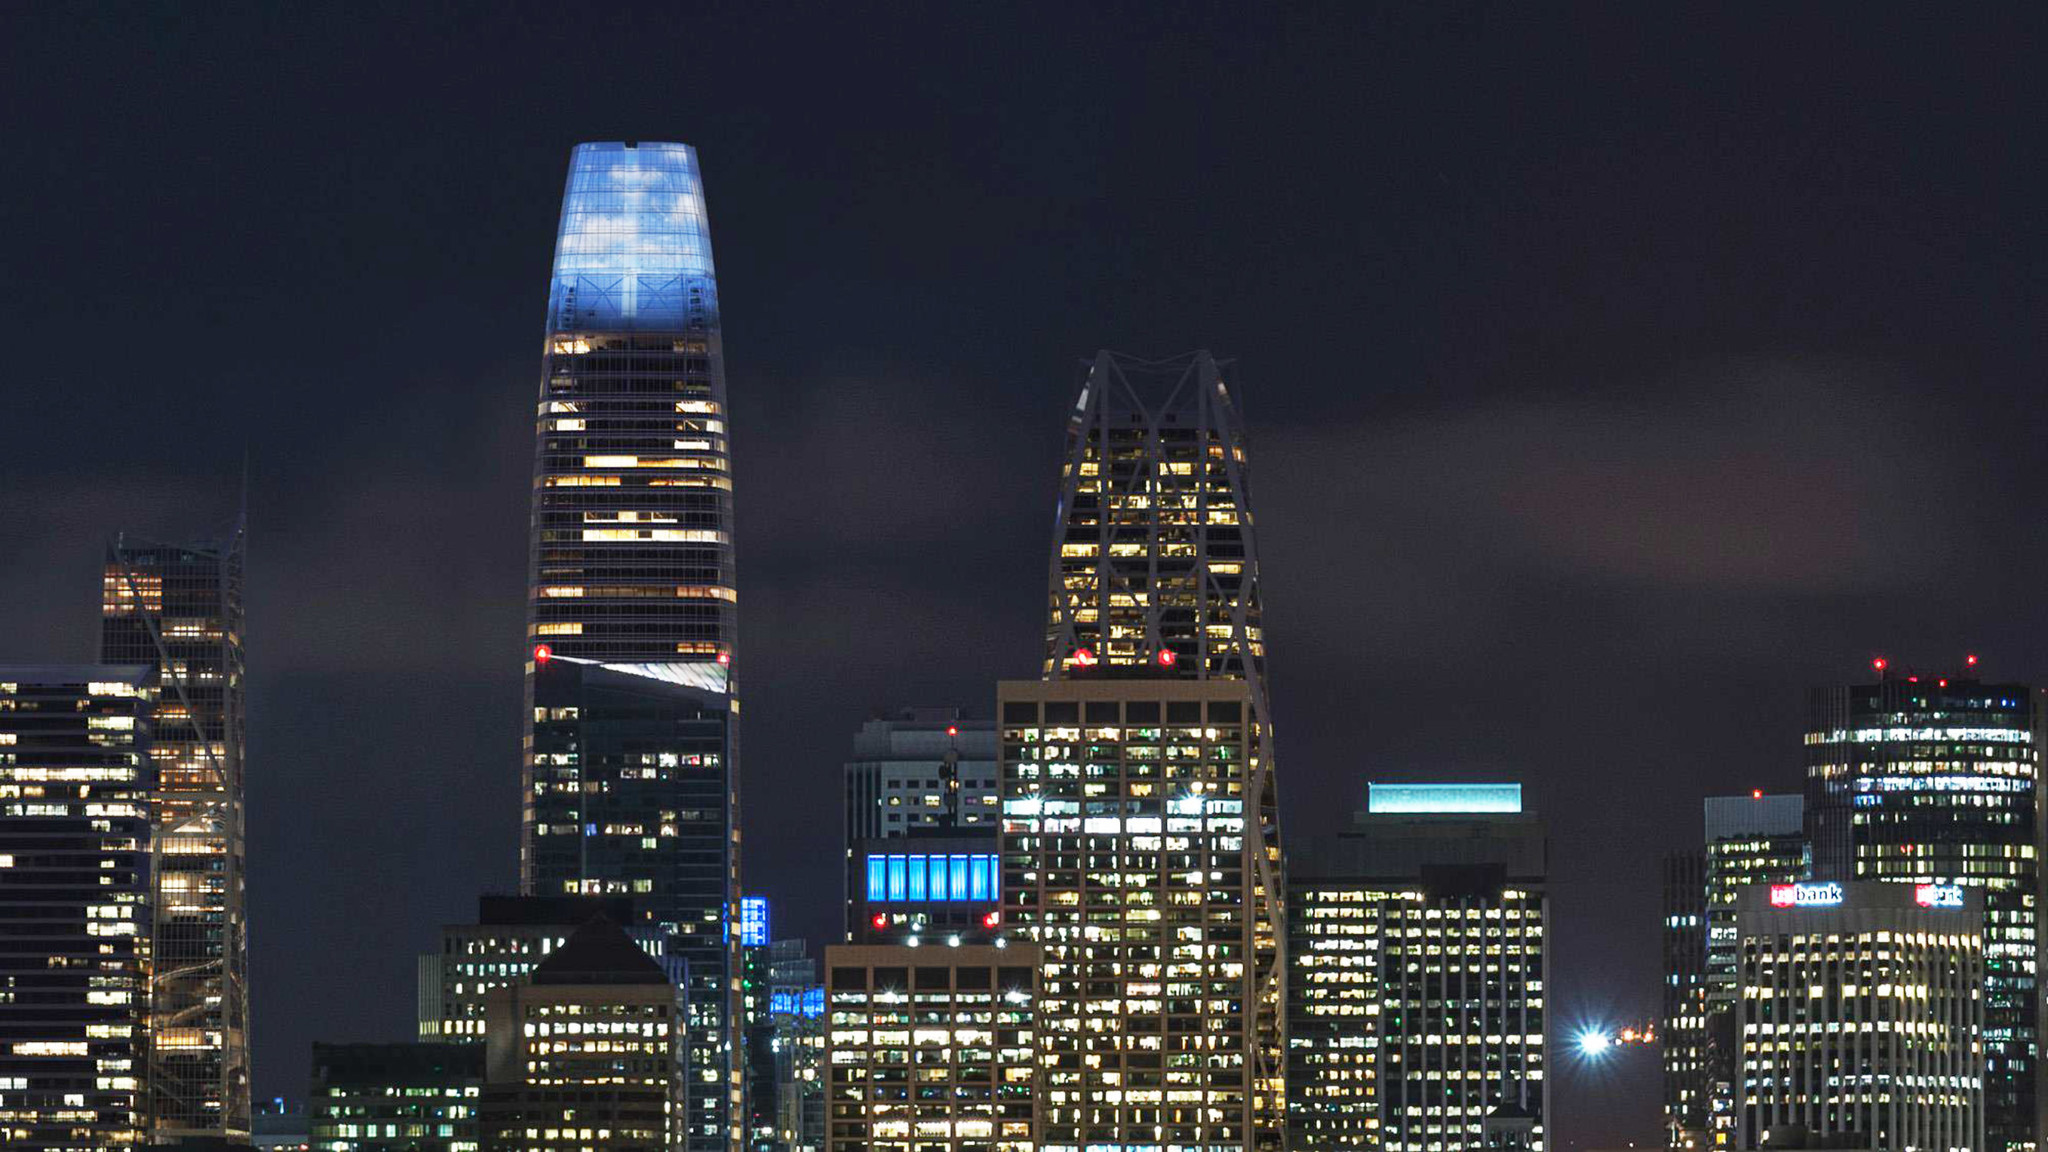 Artist's rendering of the nine-Story LED light sculpture atop the Salesforce Tower in San Francisco.